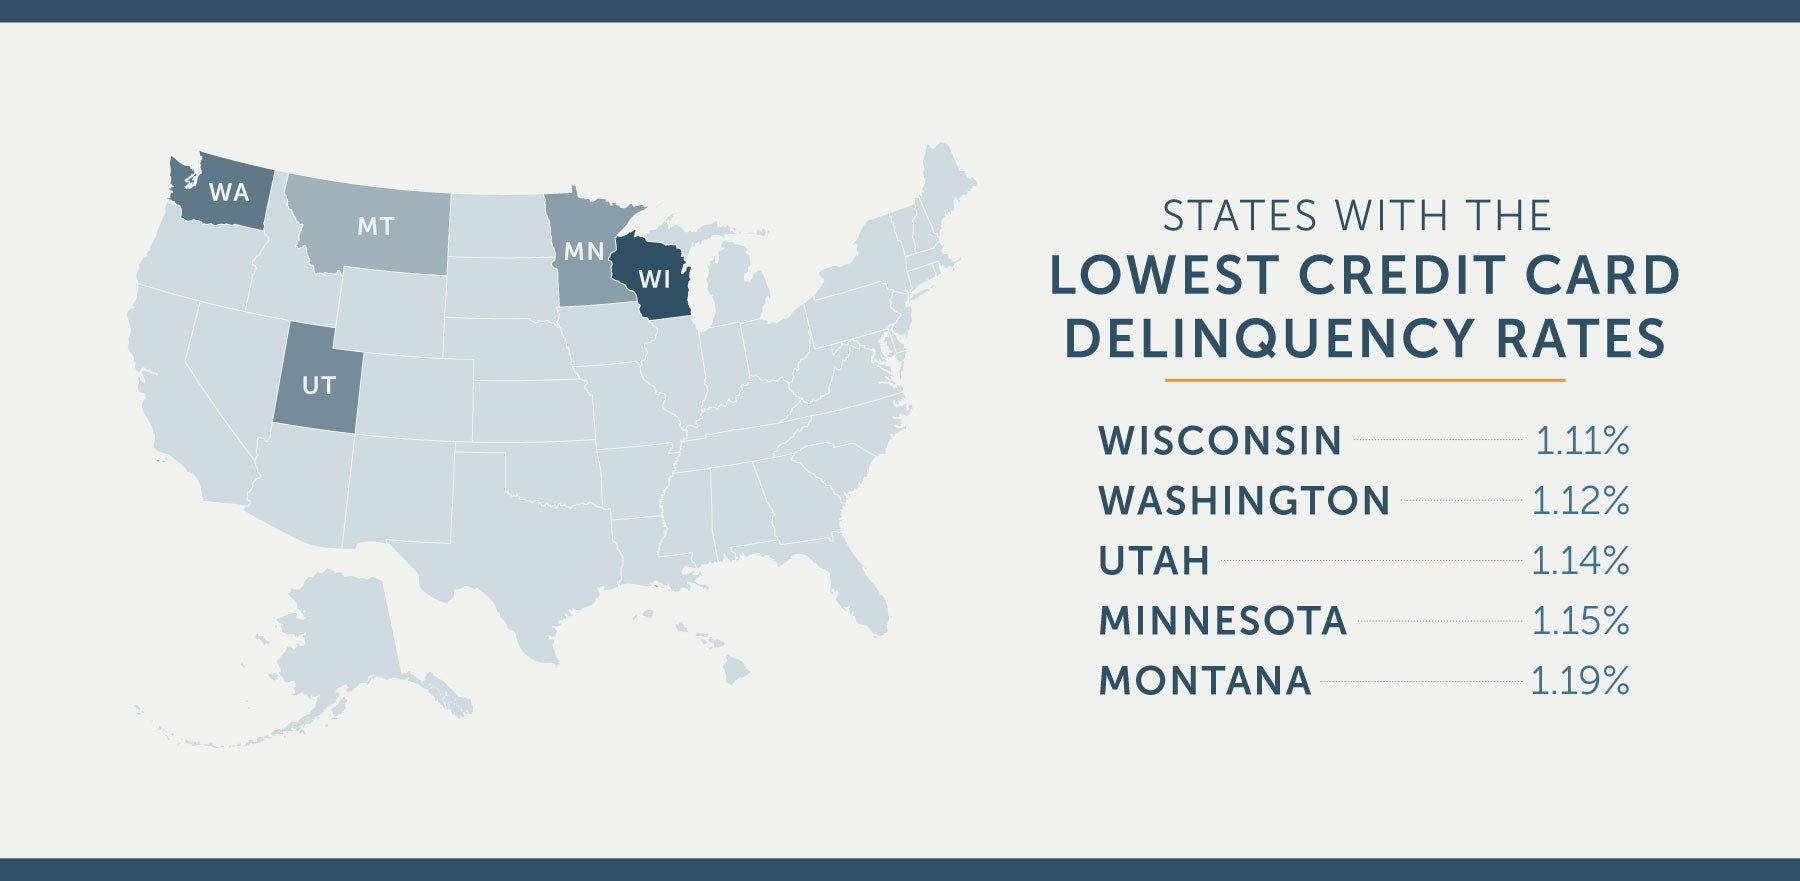 states with lowest credit card delinquency rates